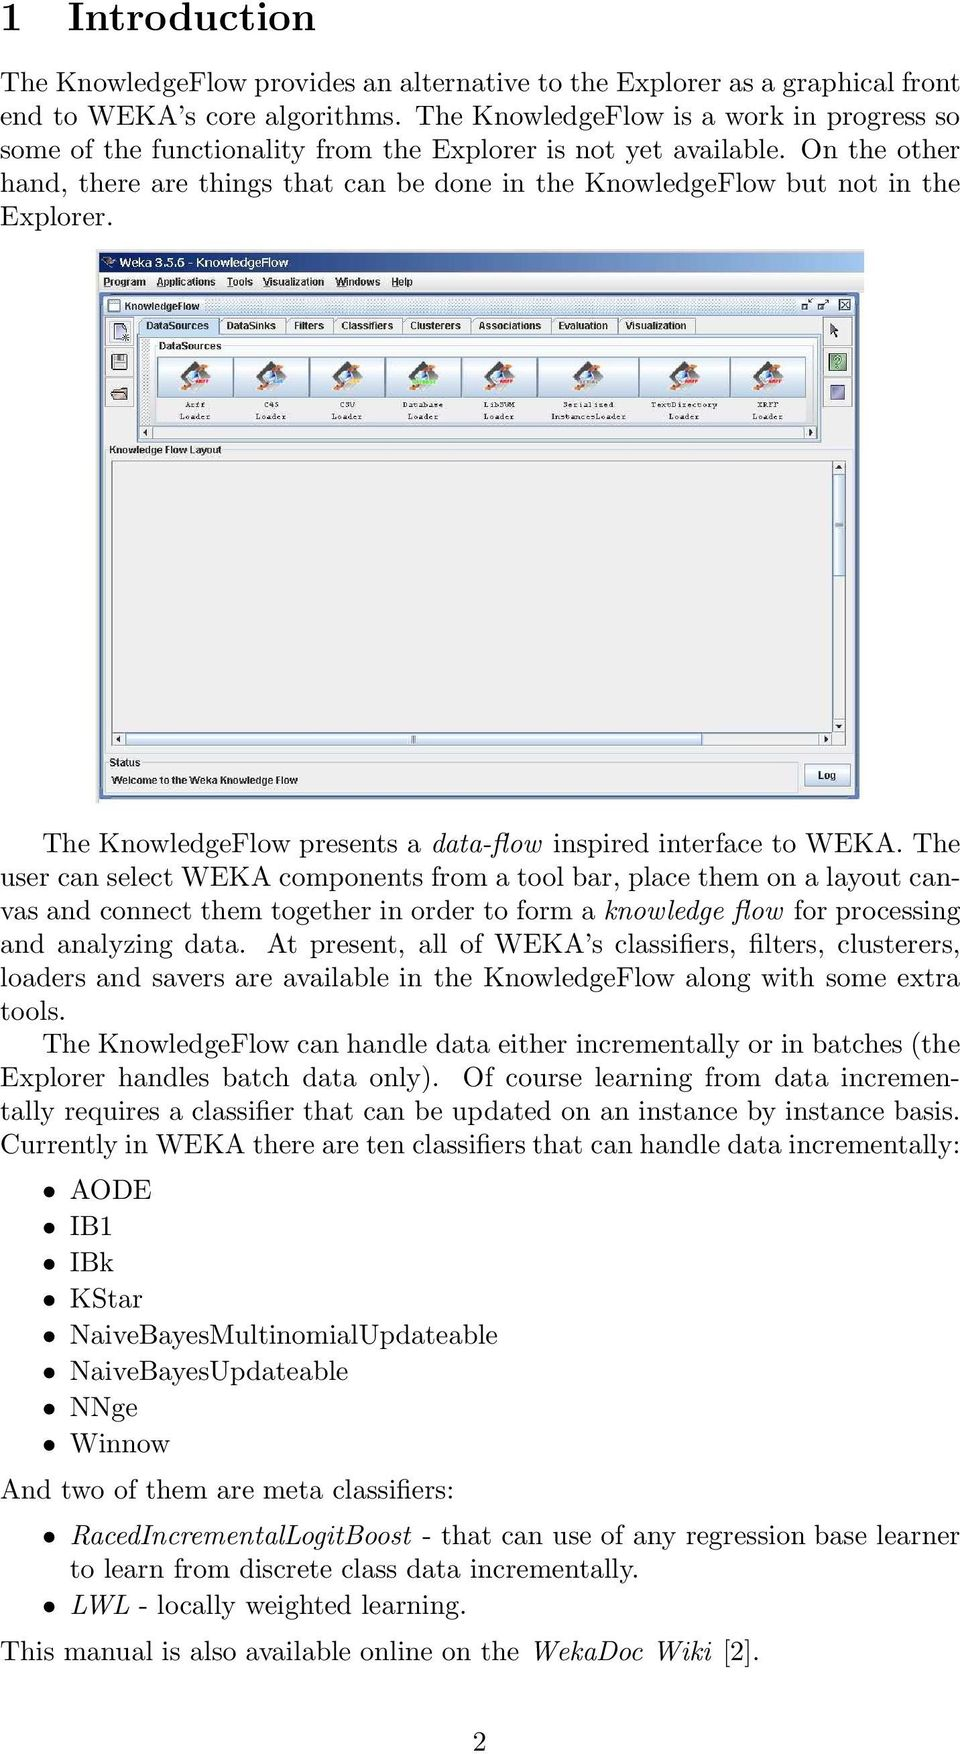 On the other hand, there are things that can be done in the KnowledgeFlow but not in the Explorer. The KnowledgeFlow presents a data-flow inspired interface to WEKA.